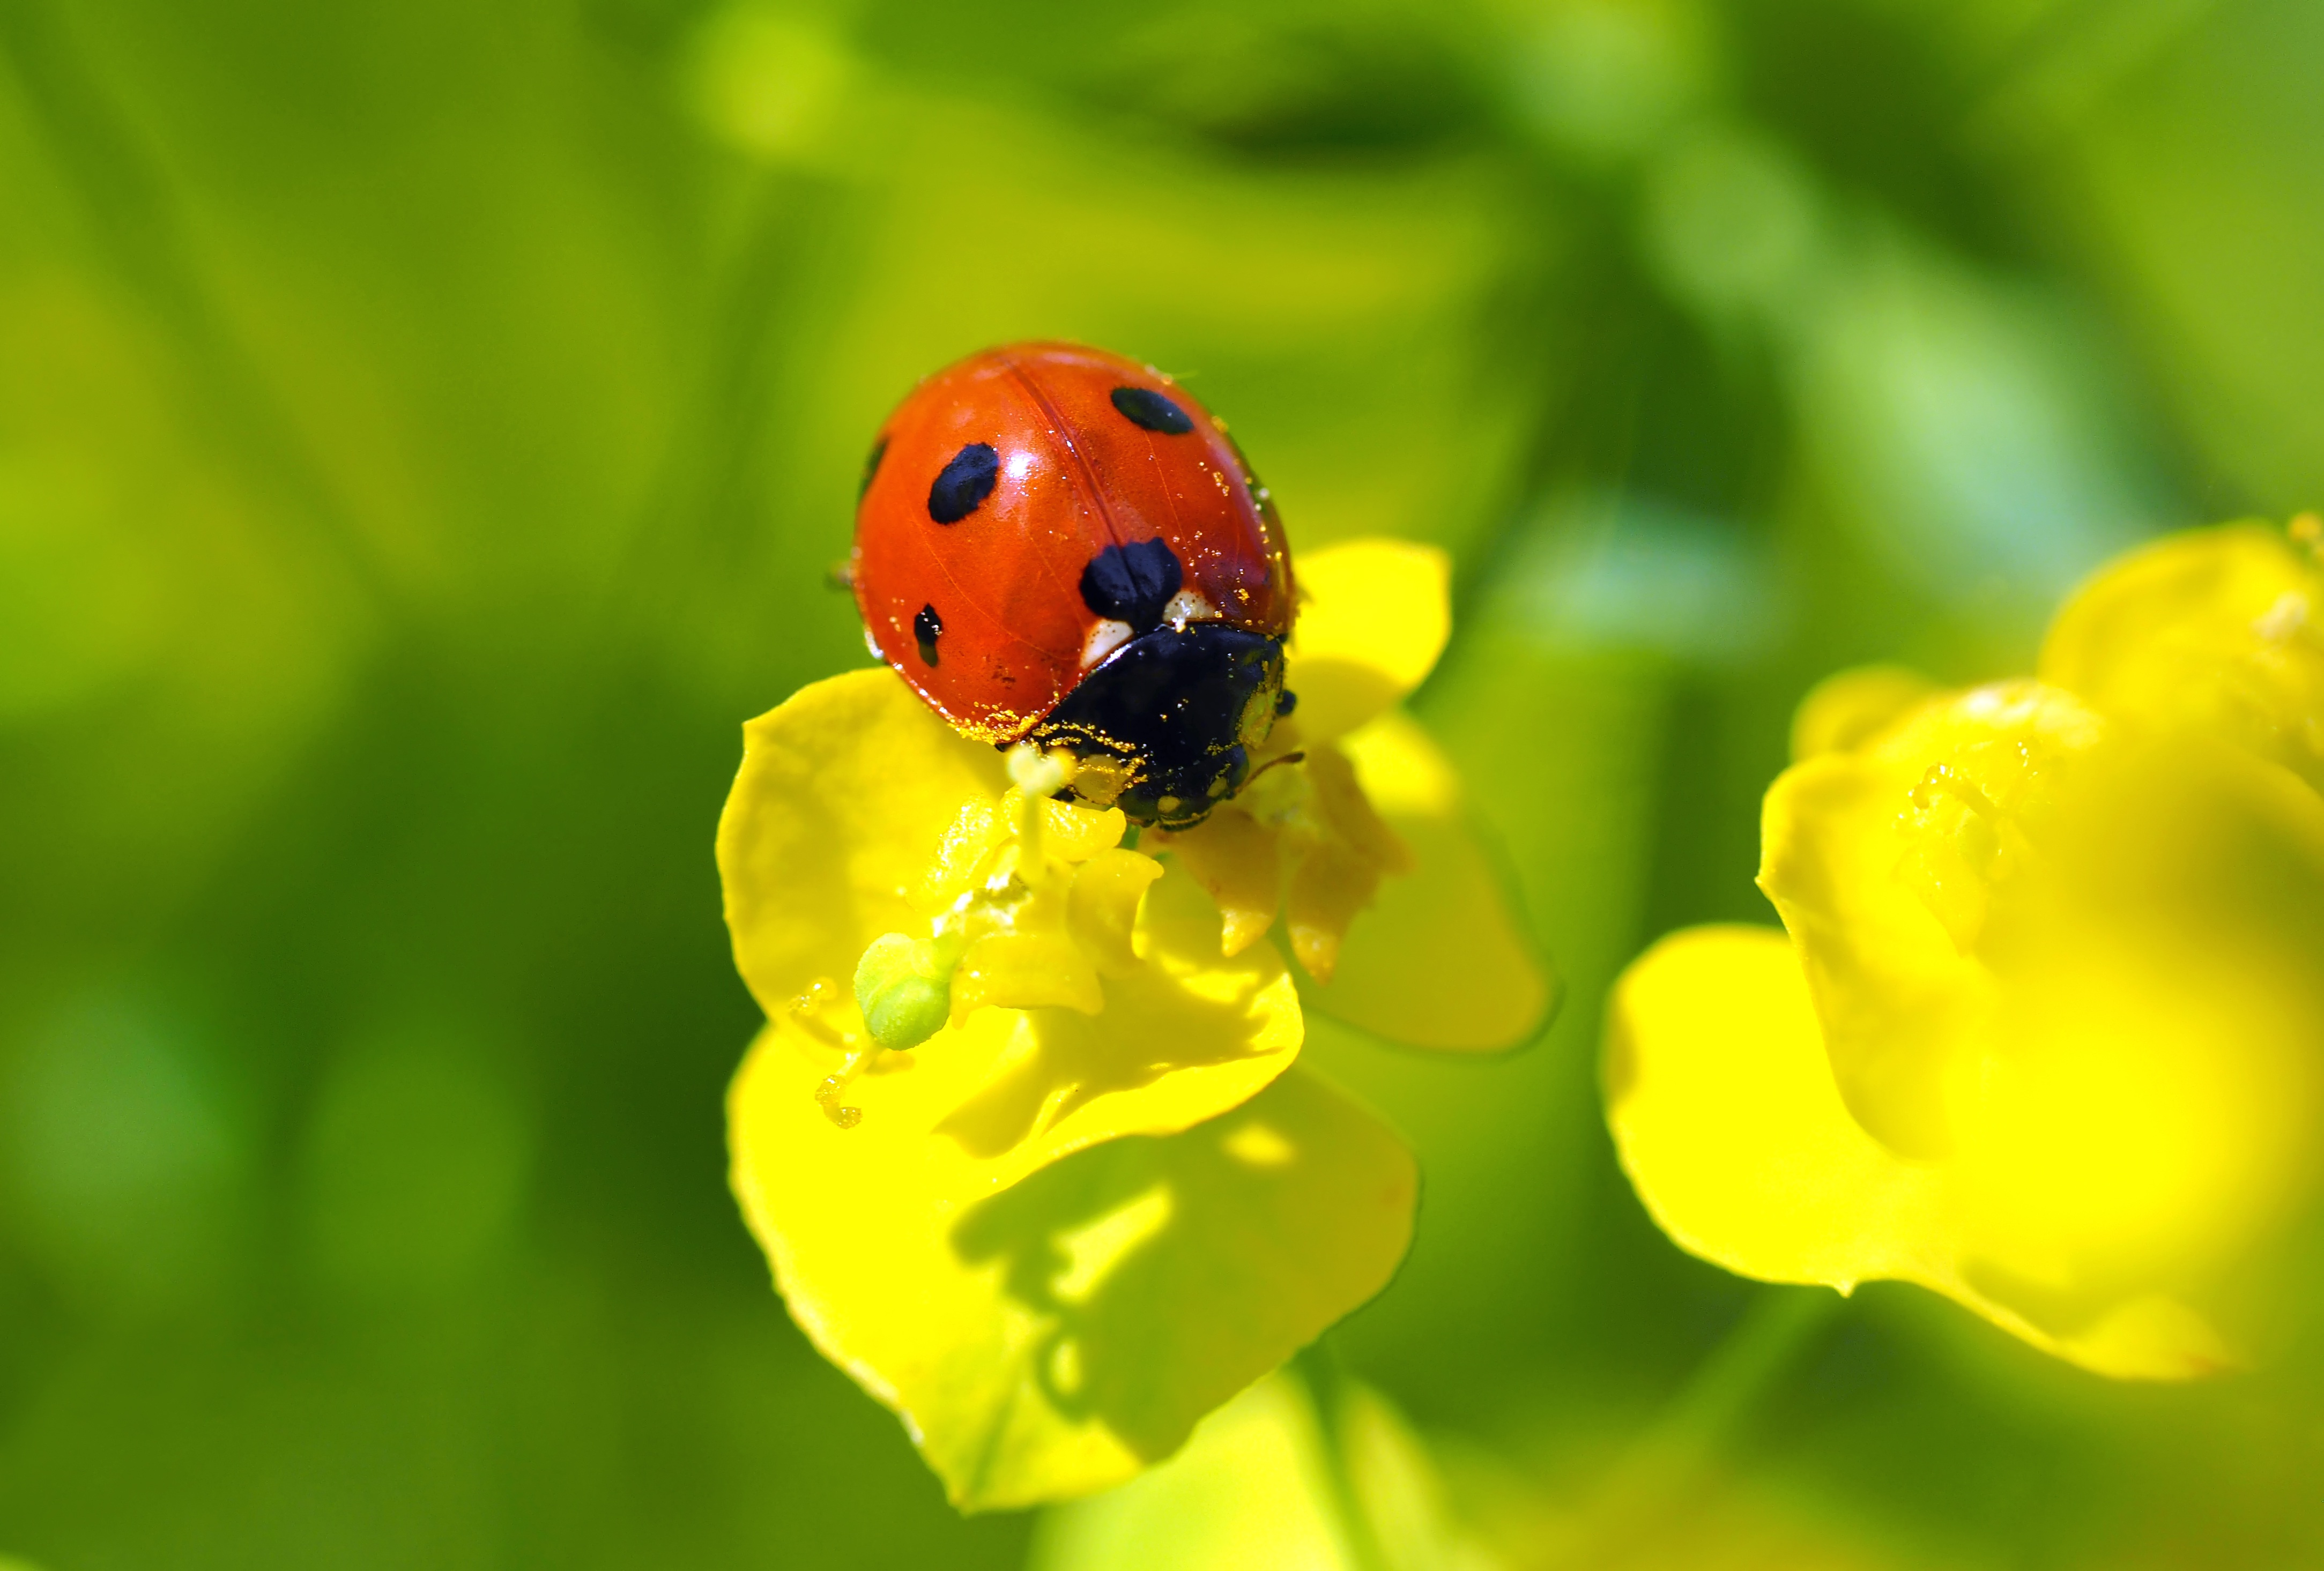 Cute Love Romance Wallpaper Cute Ladybug On A Yellow Flower Free Image